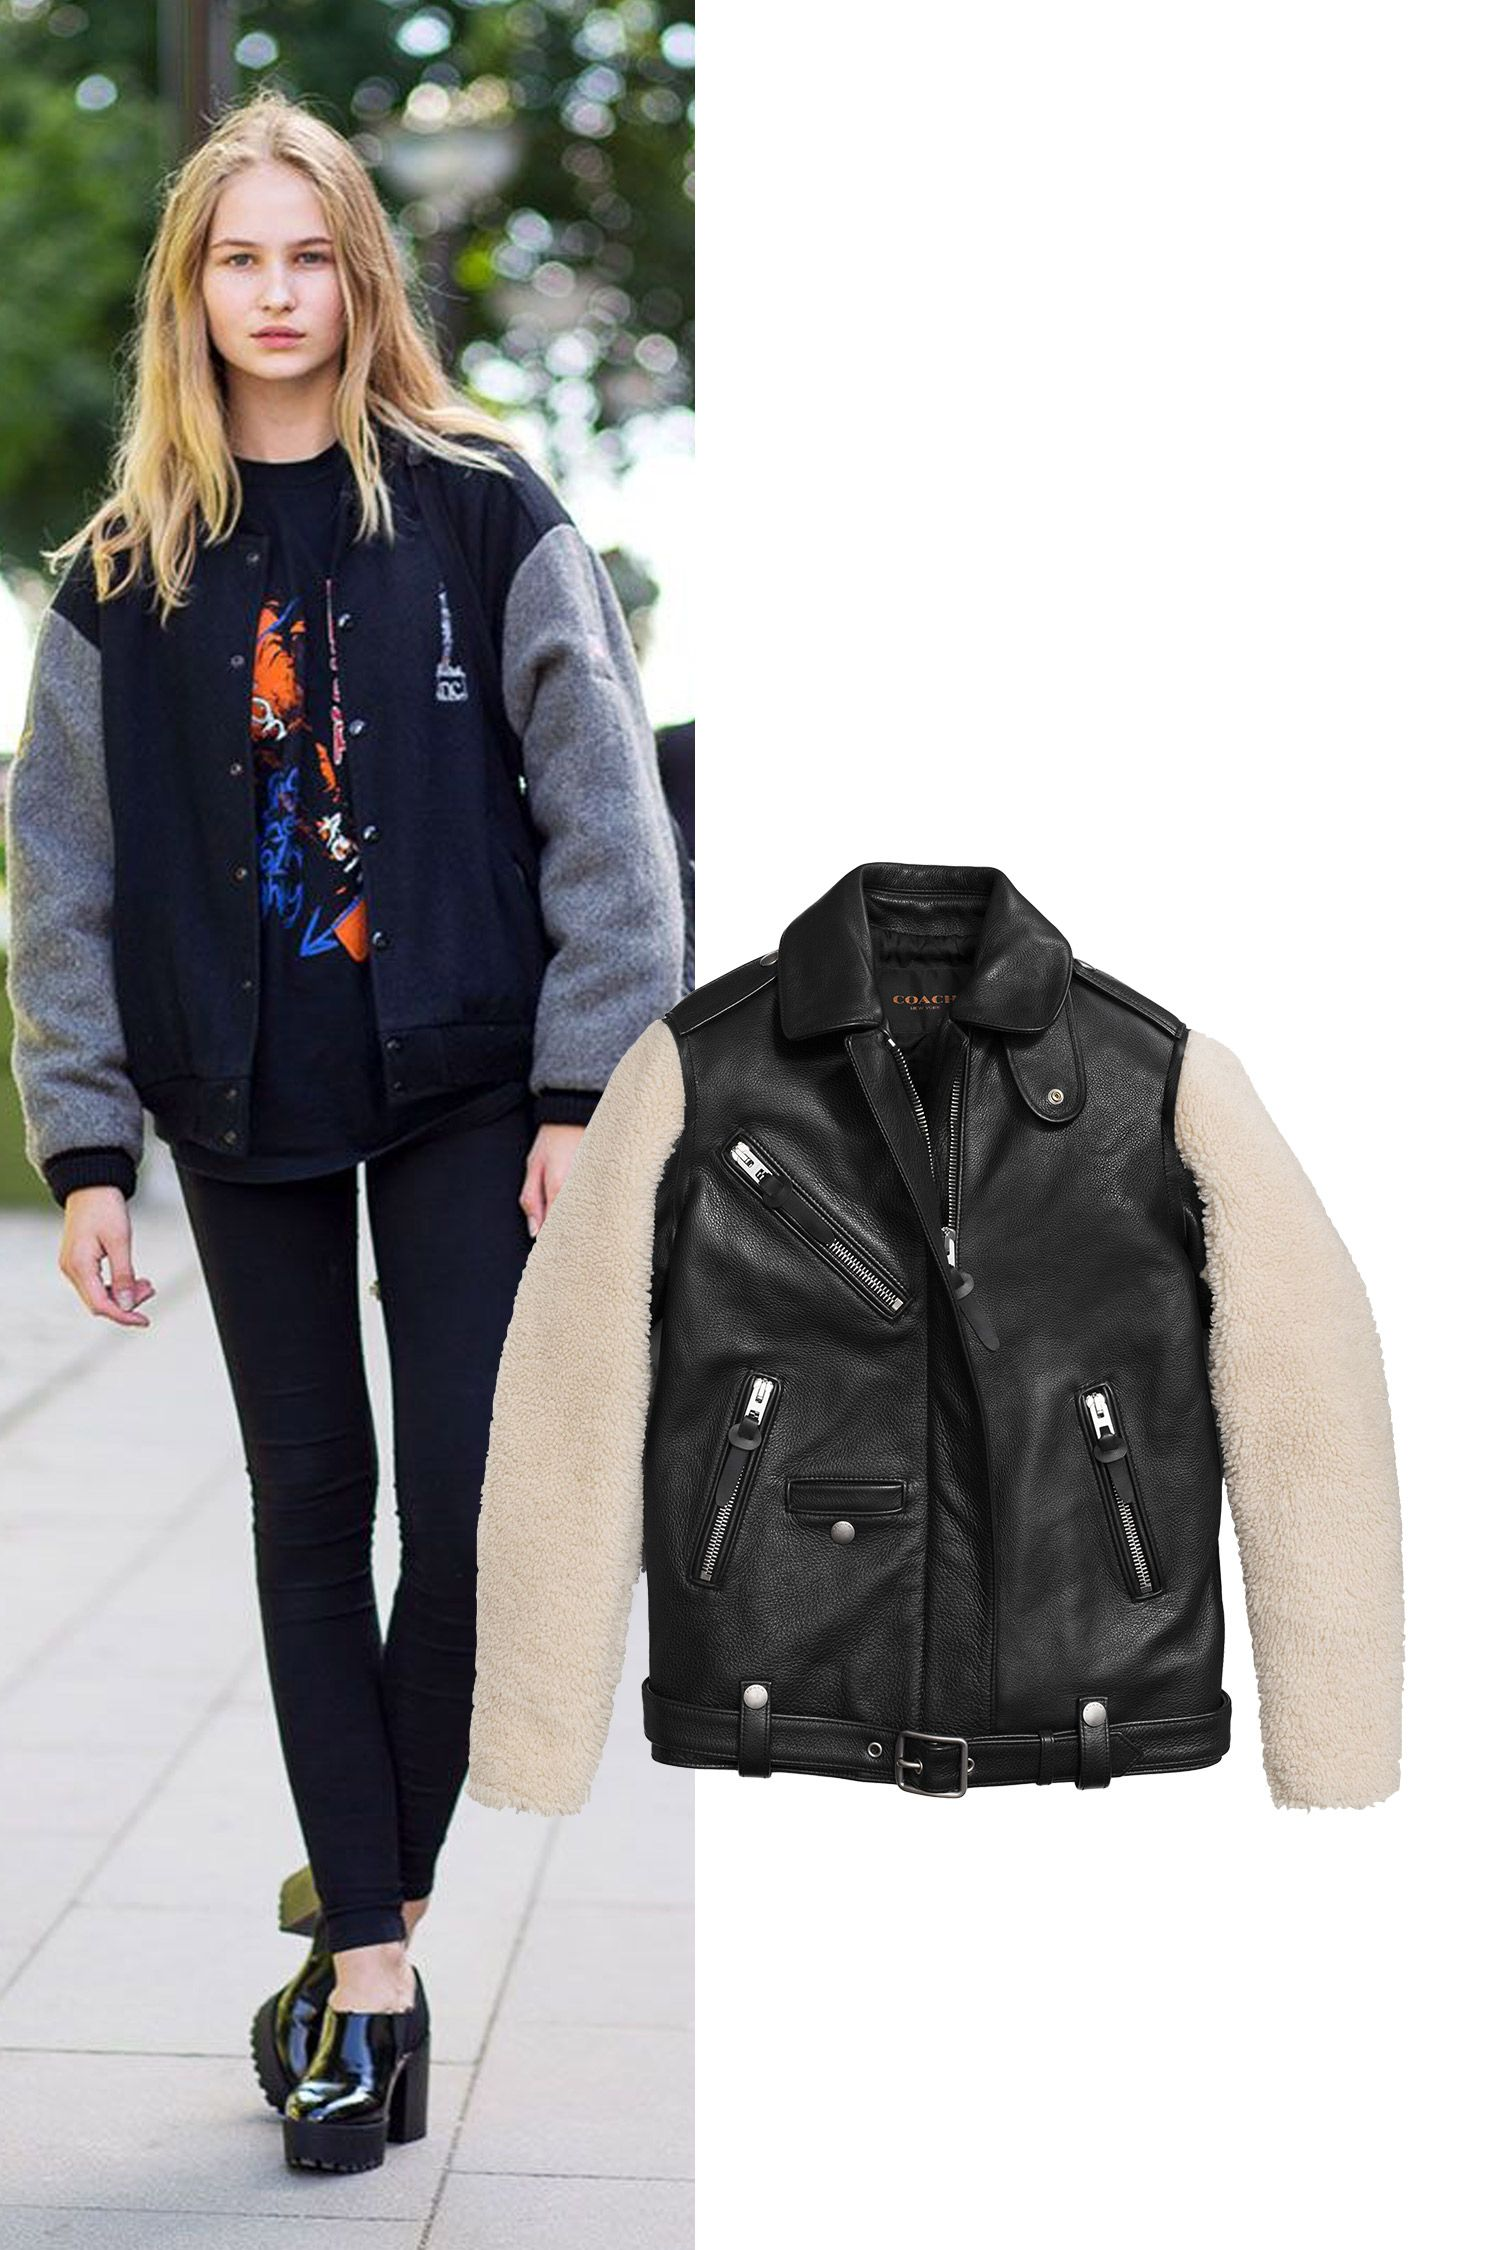 "<p><em>Sheepskin Sleeve Jacket, $1,795, <a href=""http://www.coach.com/coach-designer-winter-jackets-sheepskin-sleeve-jacket/86209.html?cid=D_B_HBZ_9563"" target=""_blank"">coach.com</a>.</em></p>"